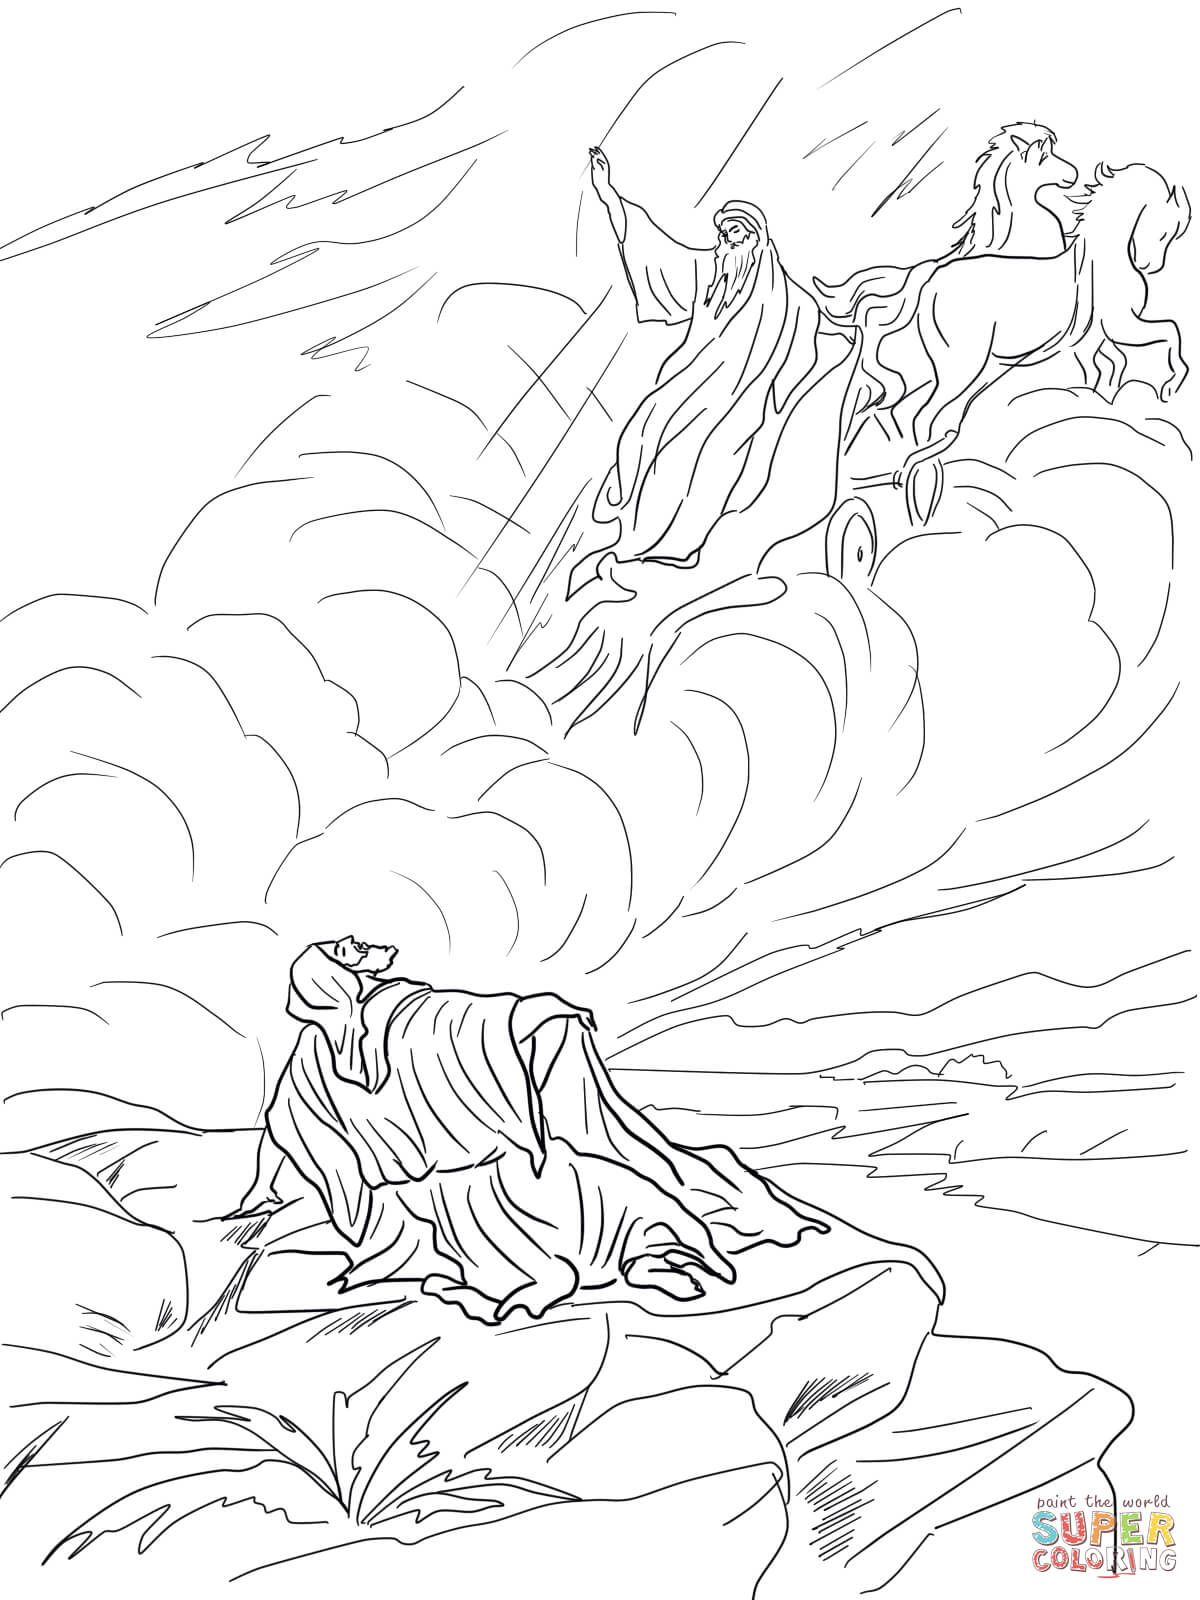 Elijah Taken Up To Heaven In A Chariot Of Fire Coloring Page Free Printable Coloring Pages Sunday School Crafts Bible Crafts Coloring Pages